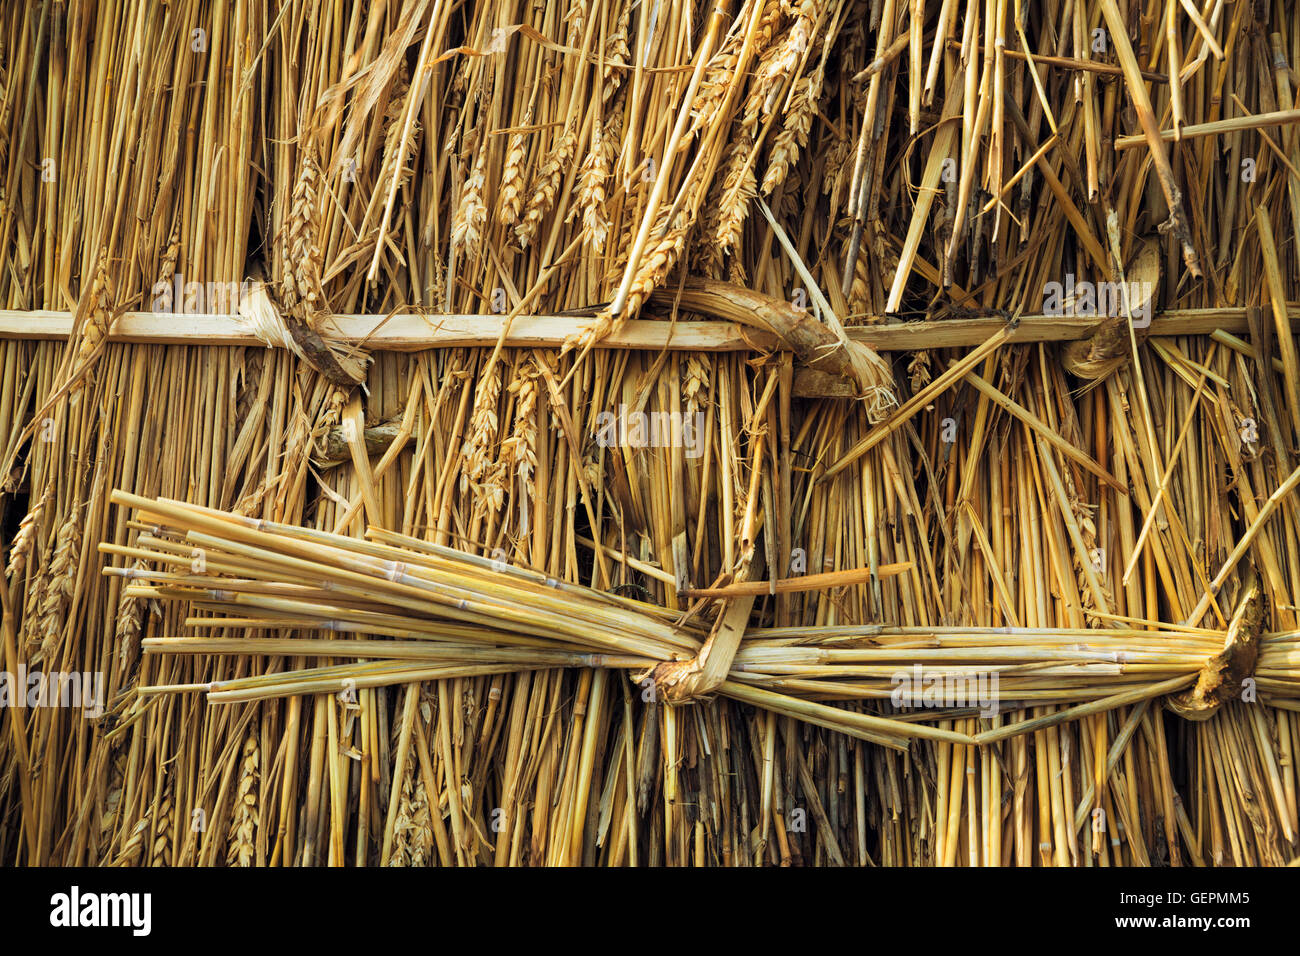 Close up of straw laid on a roof, and pegged into place with wood pegs and twisted reed. - Stock Image